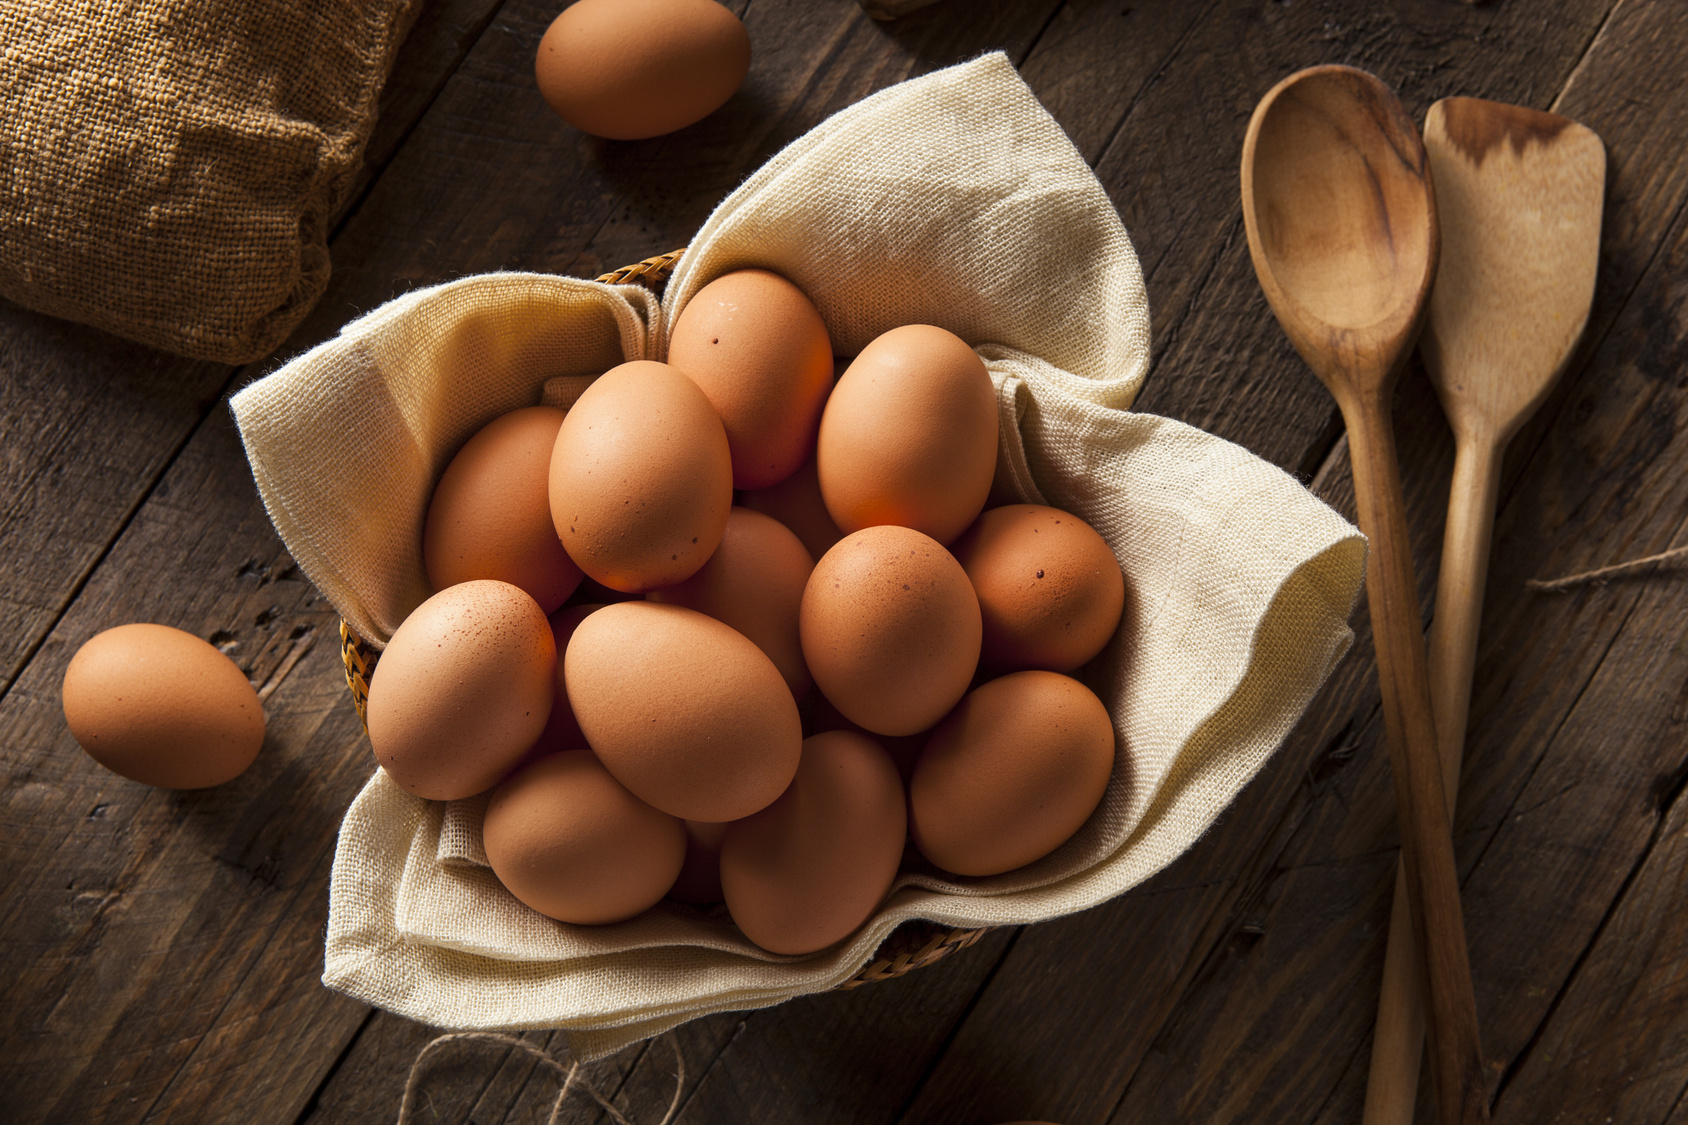 Raw Organic Brown Eggs in a Basket